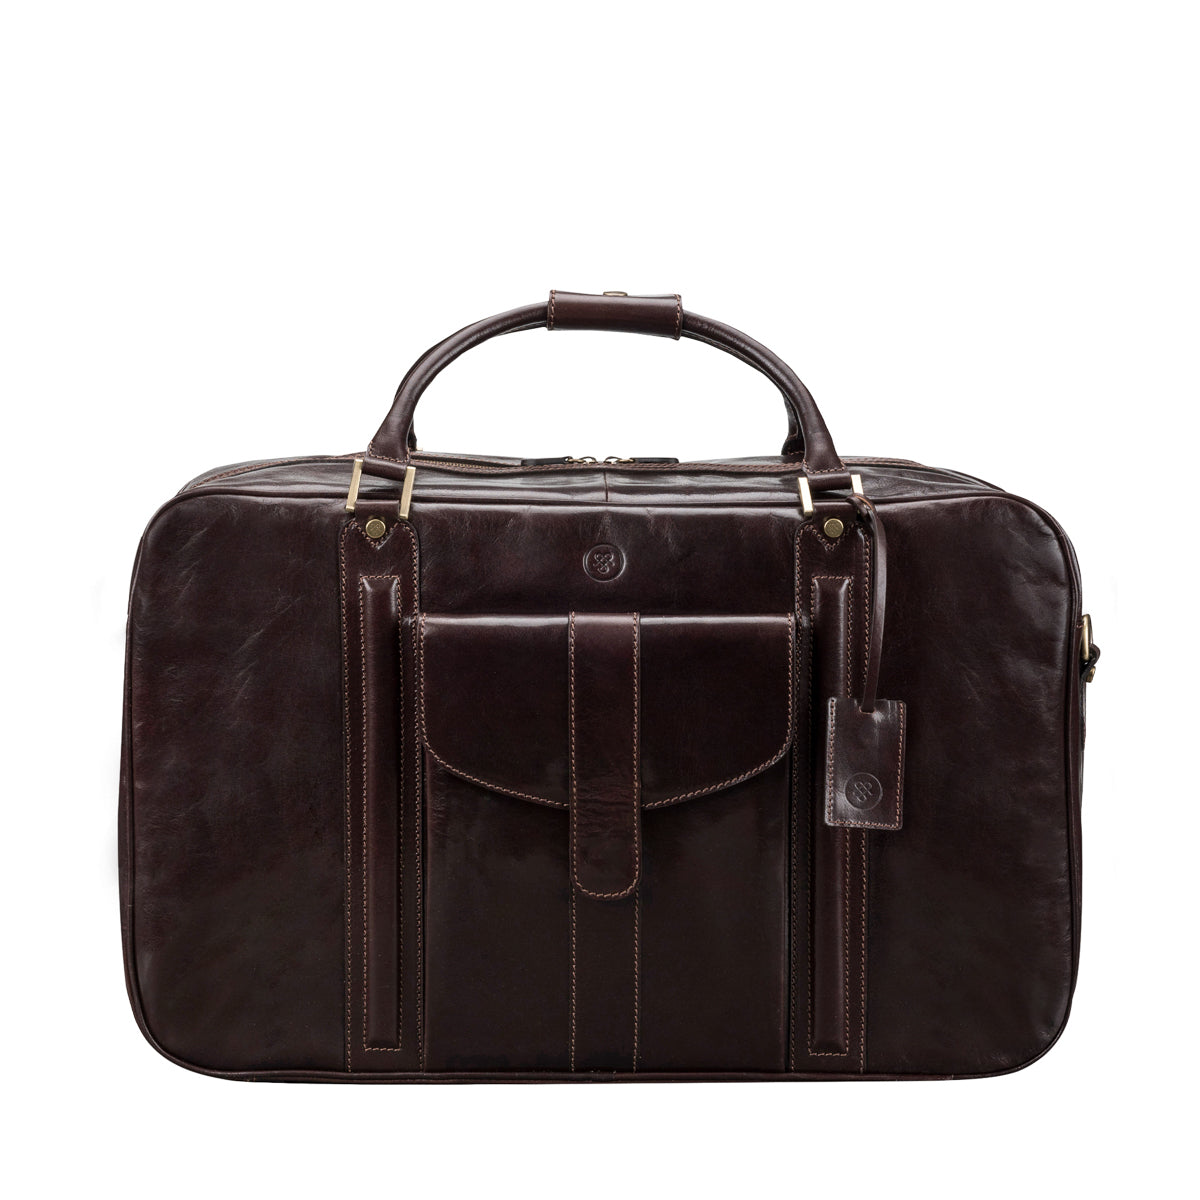 Image 1 of the 'Maurizio' Dark Chocolate Italian Veg-Tanned Leather Suitcase